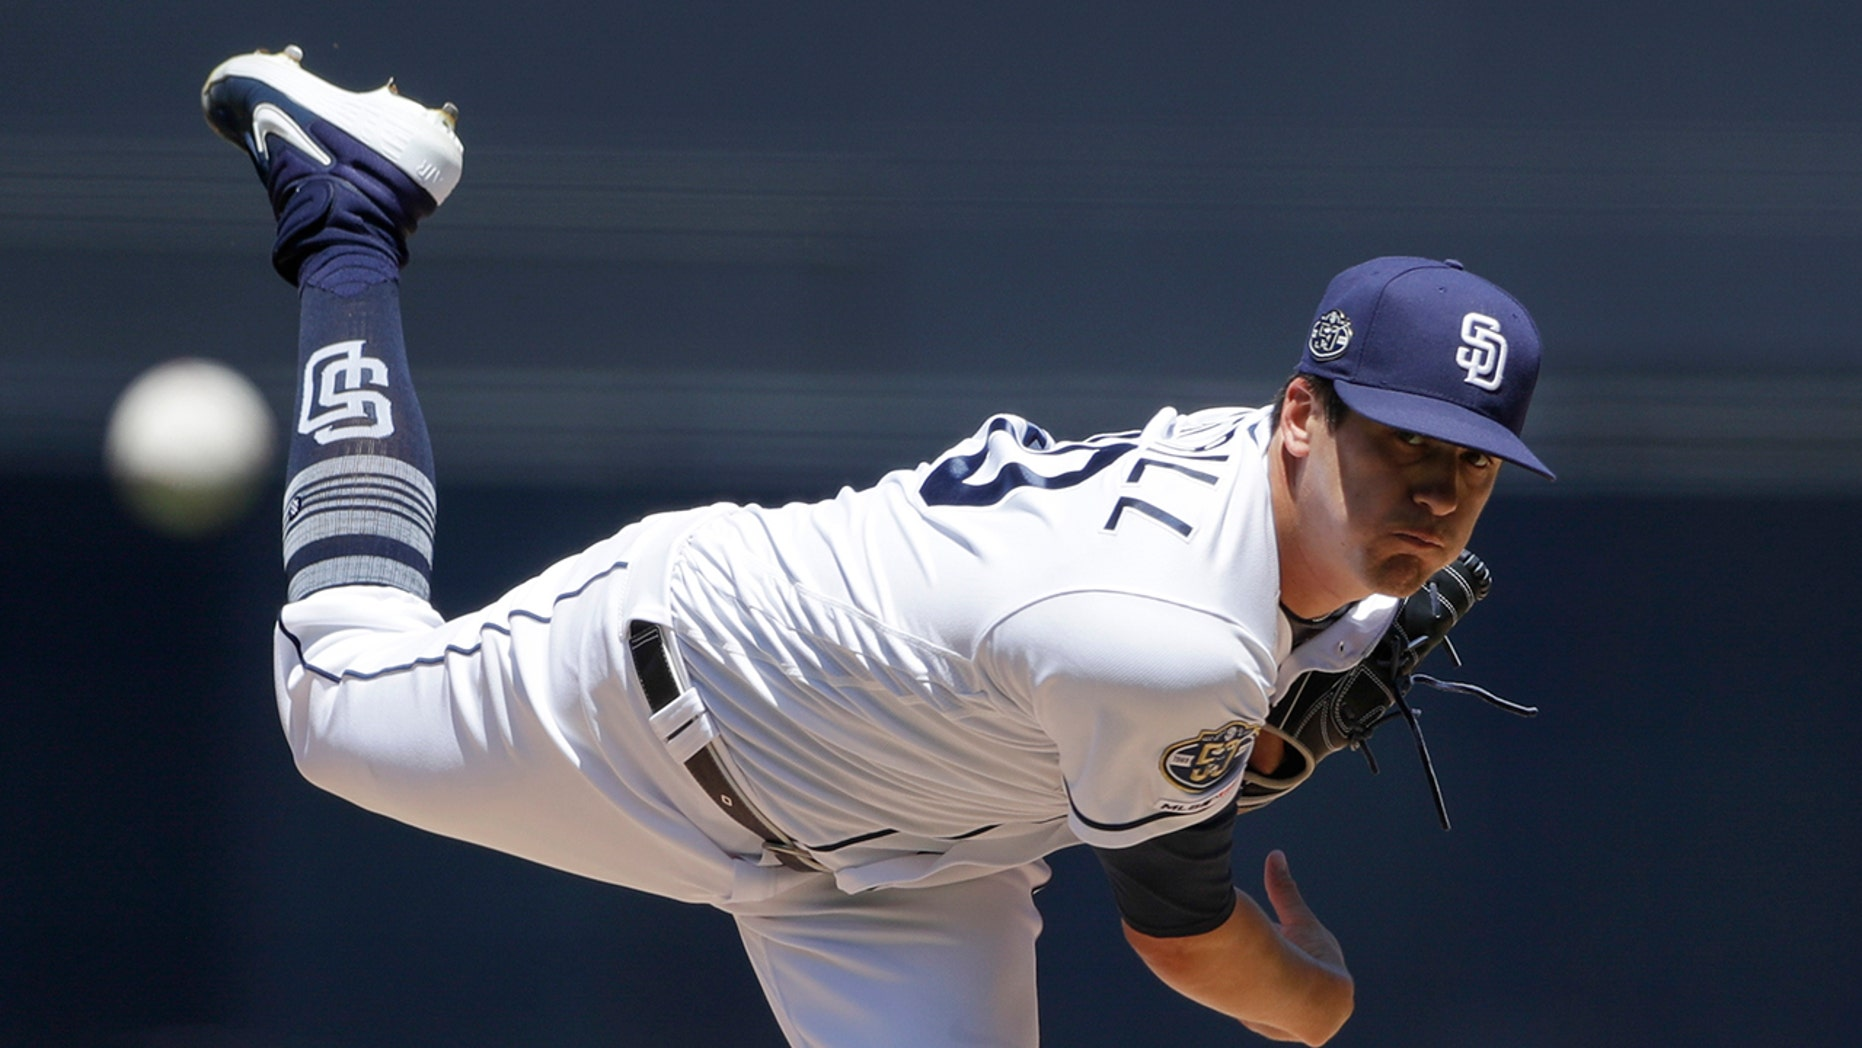 San Diego Padres starting pitcher Cal Quantrill works against a Tampa Bay Rays batter during the first inning of a baseball game Wednesday, Aug. 14, 2019, in San Diego. (AP Photo/Gregory Bull)